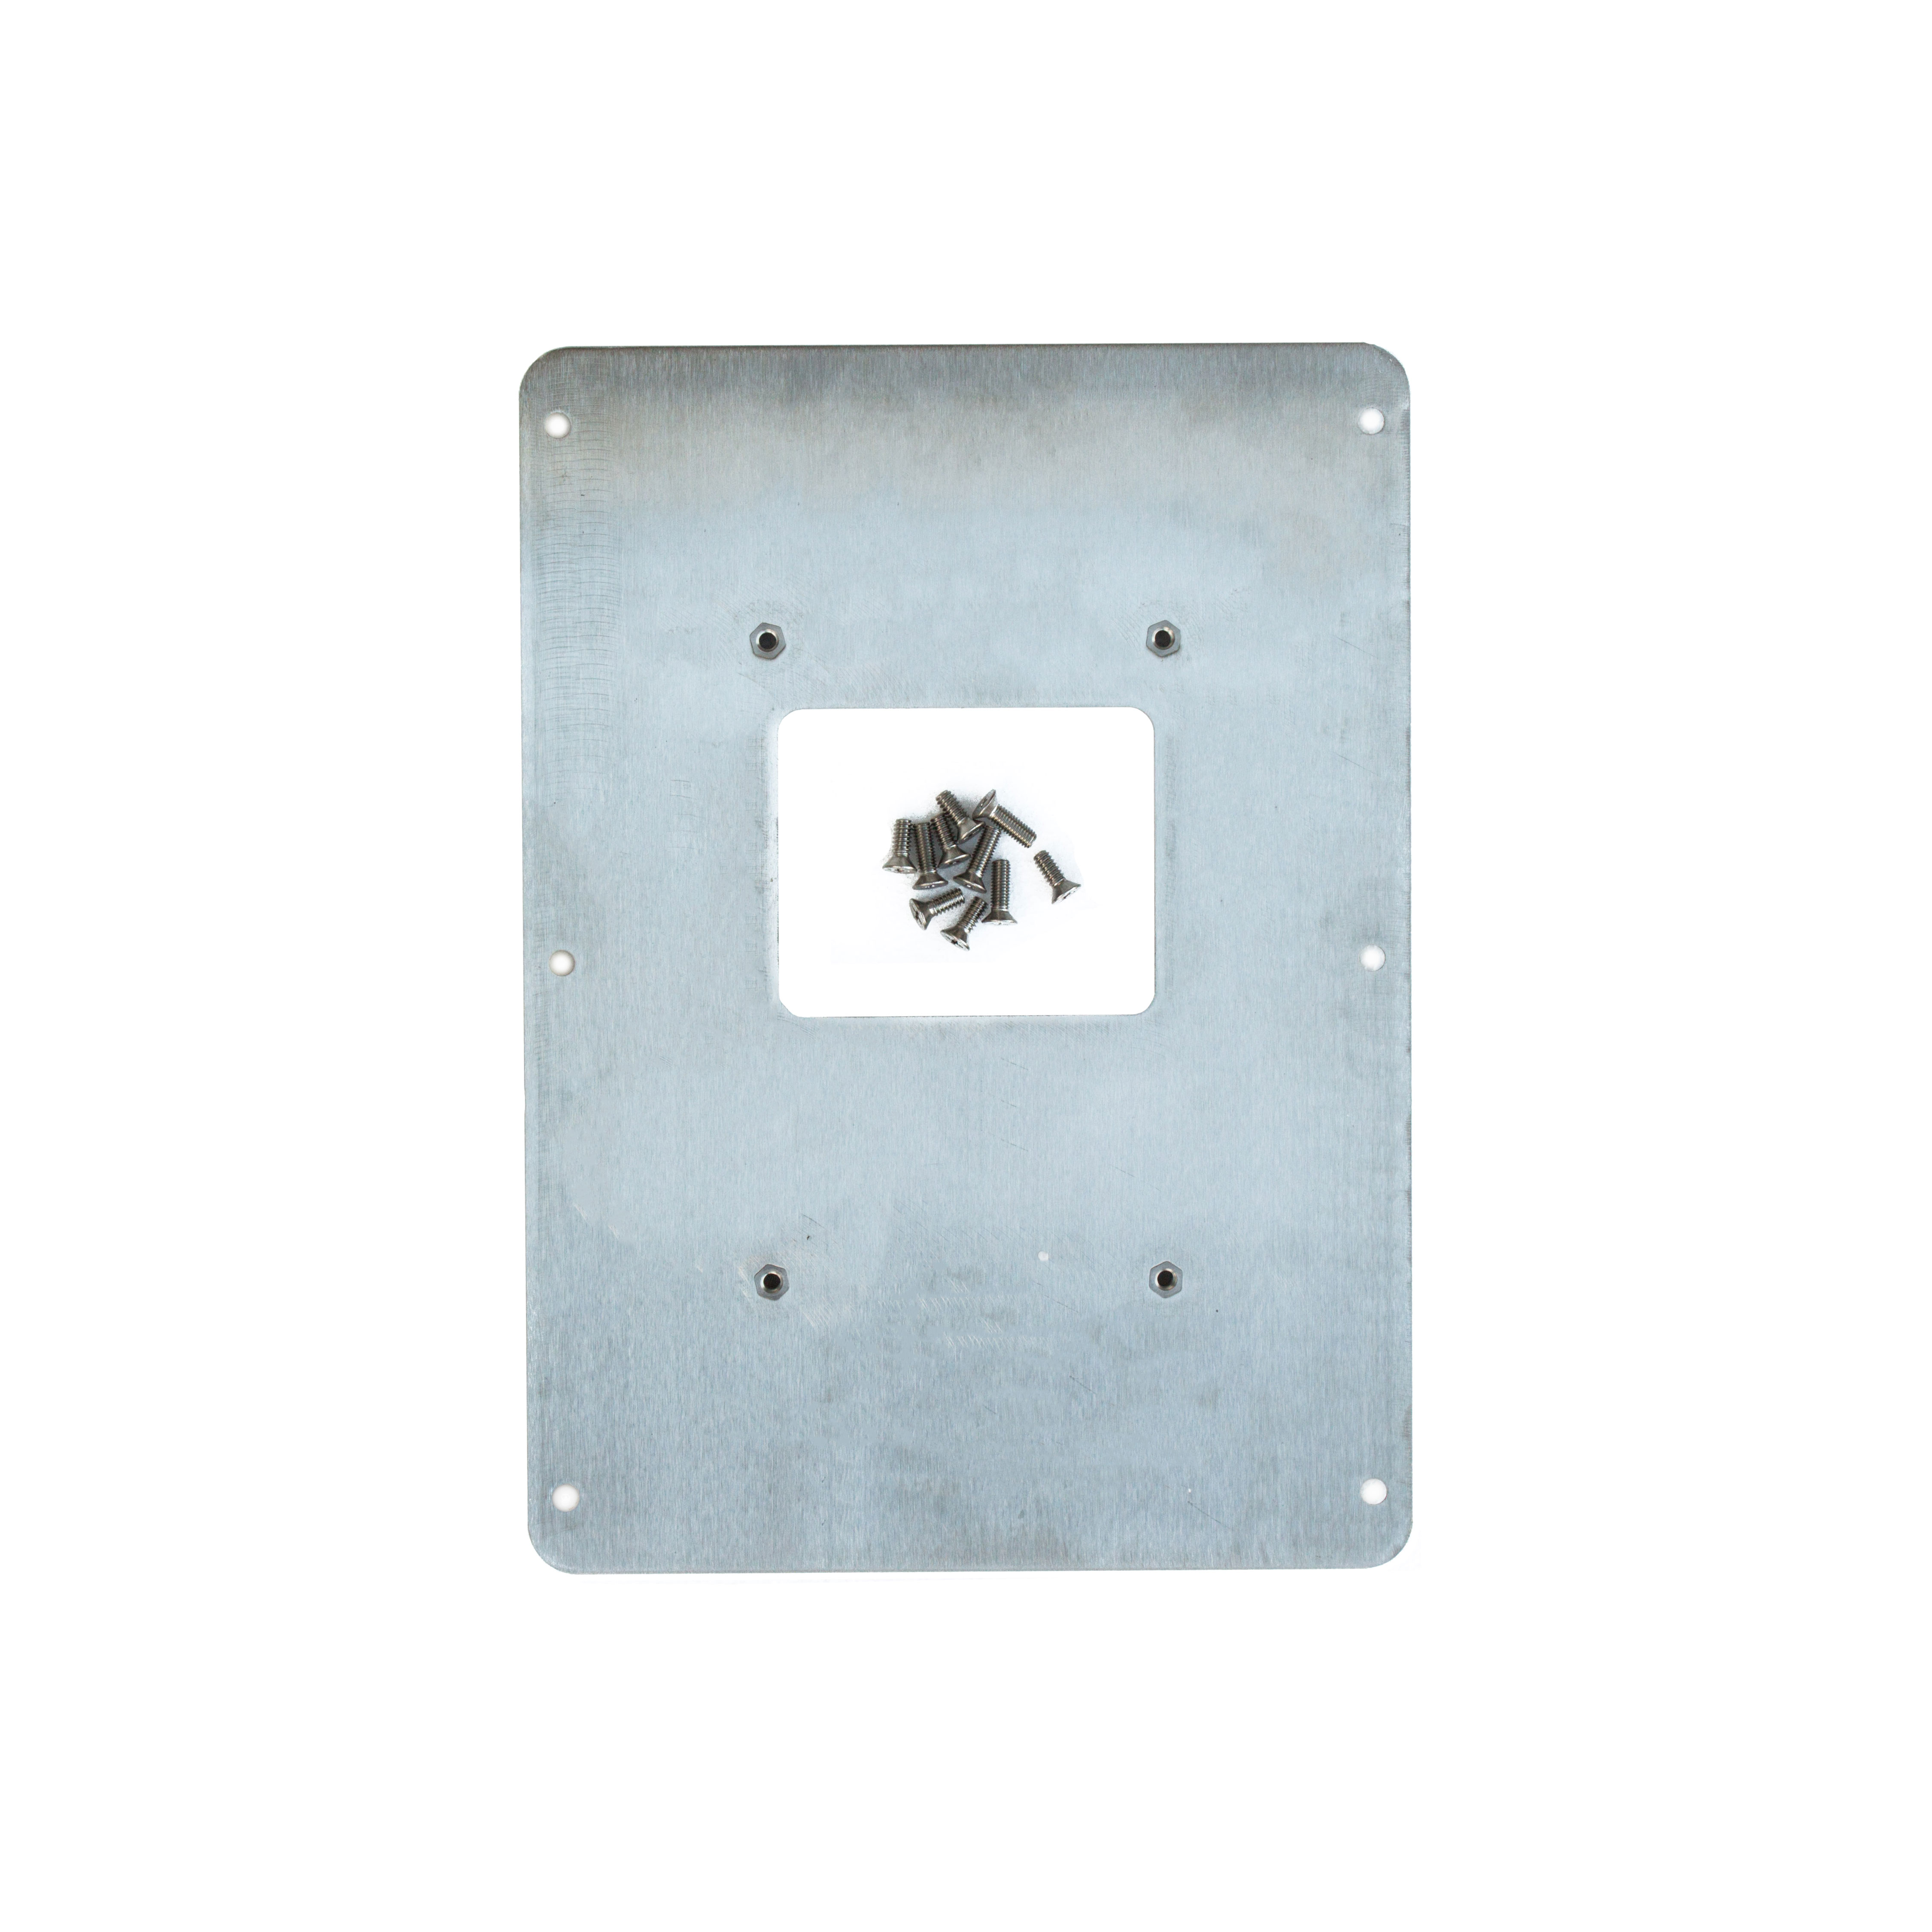 Turbine adapter plate picture